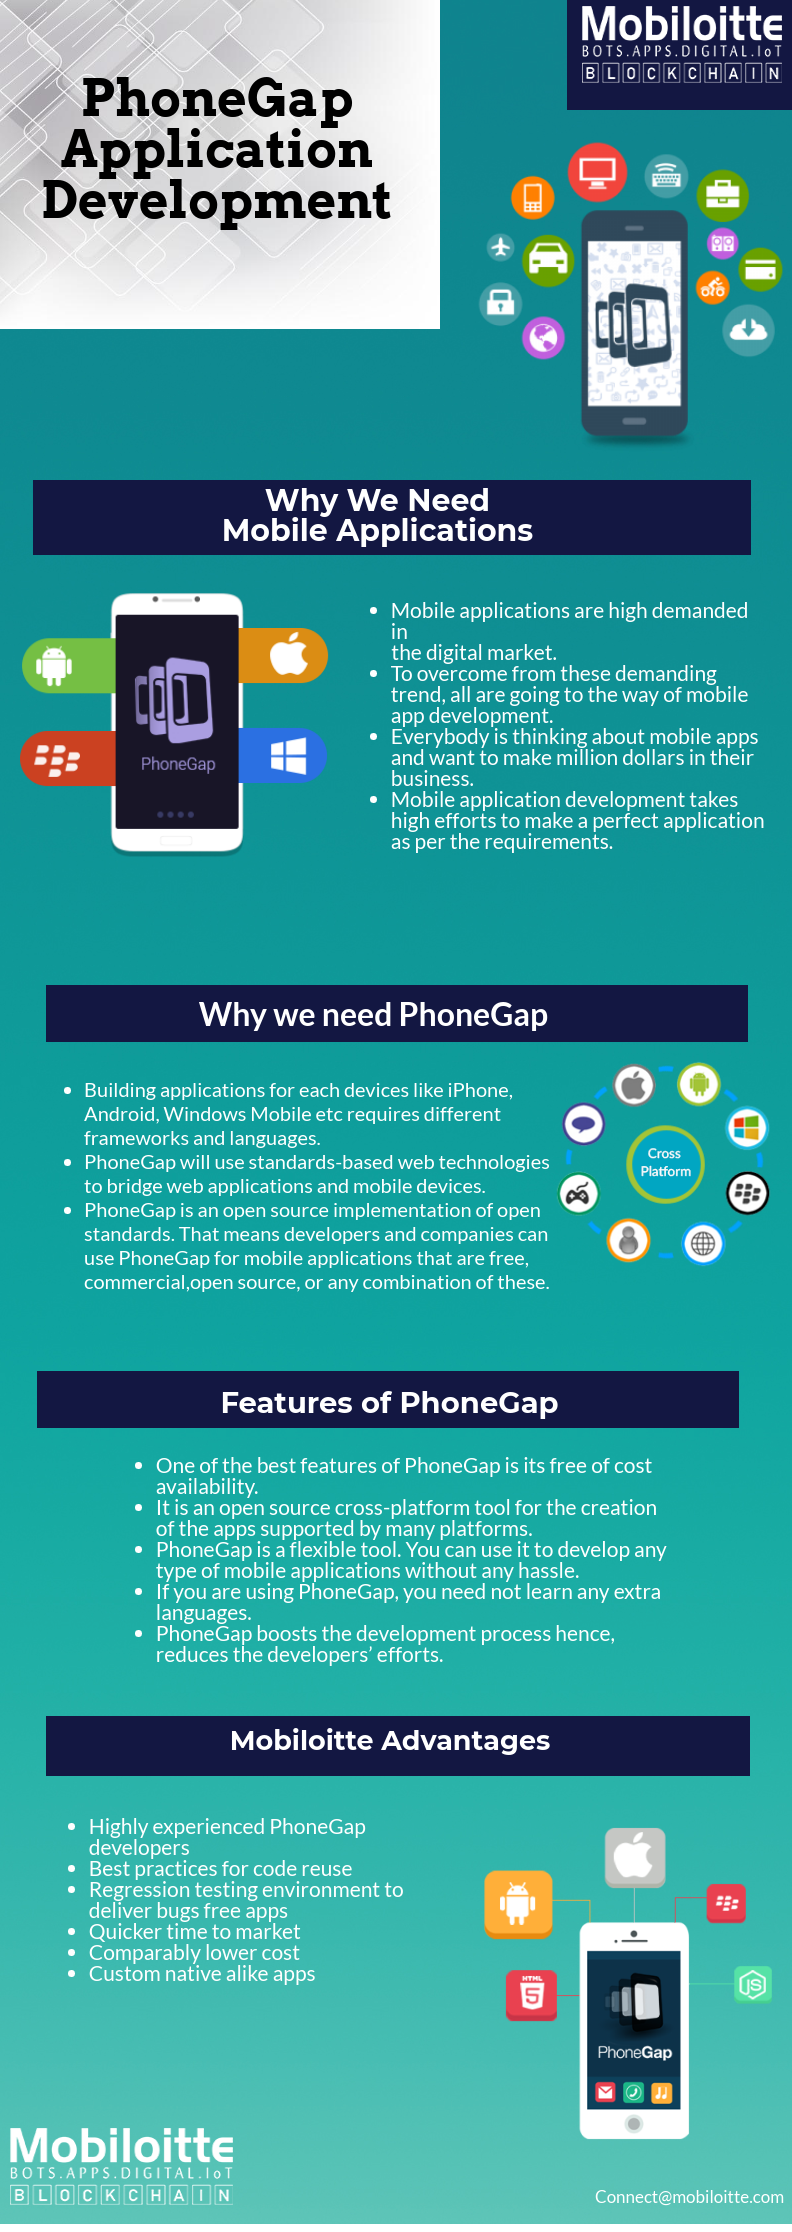 PhoneGap is an opensource framework for mobile